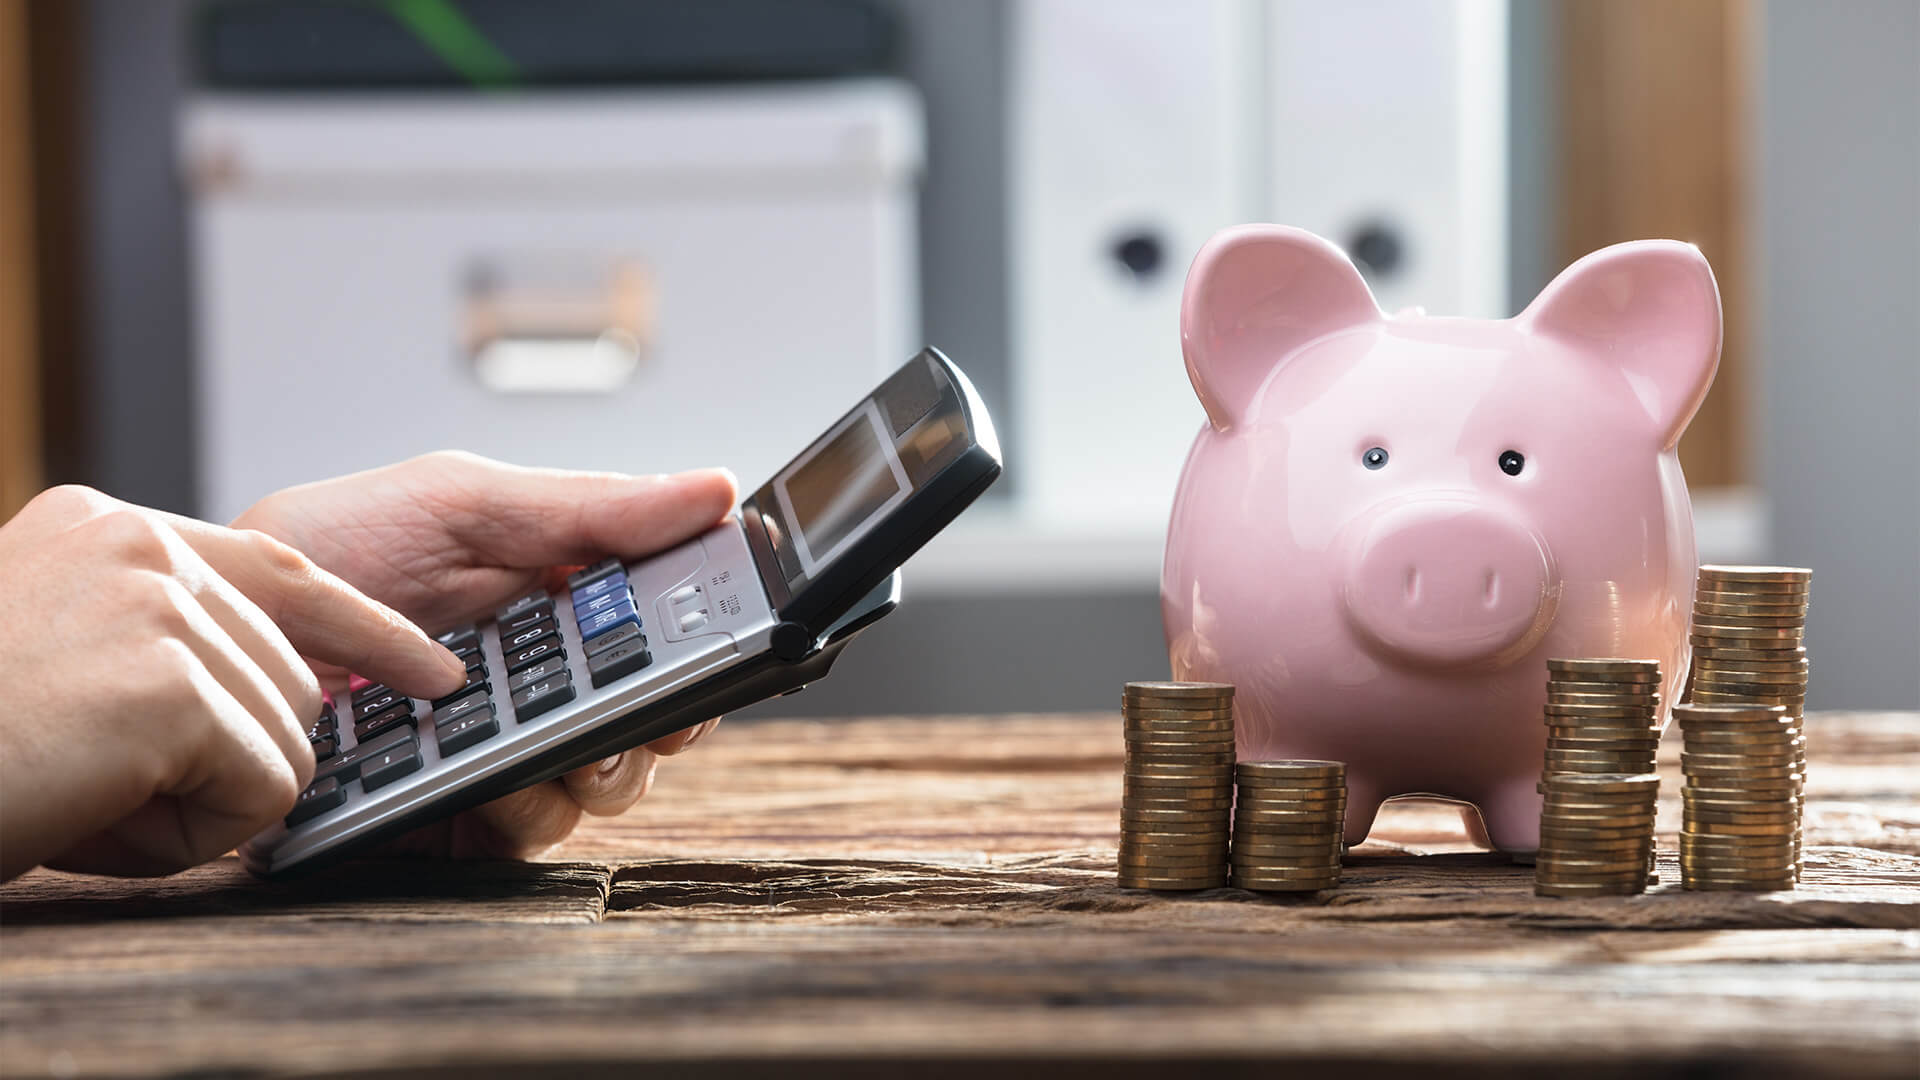 Man making a budget with a calculator and a piggy bank